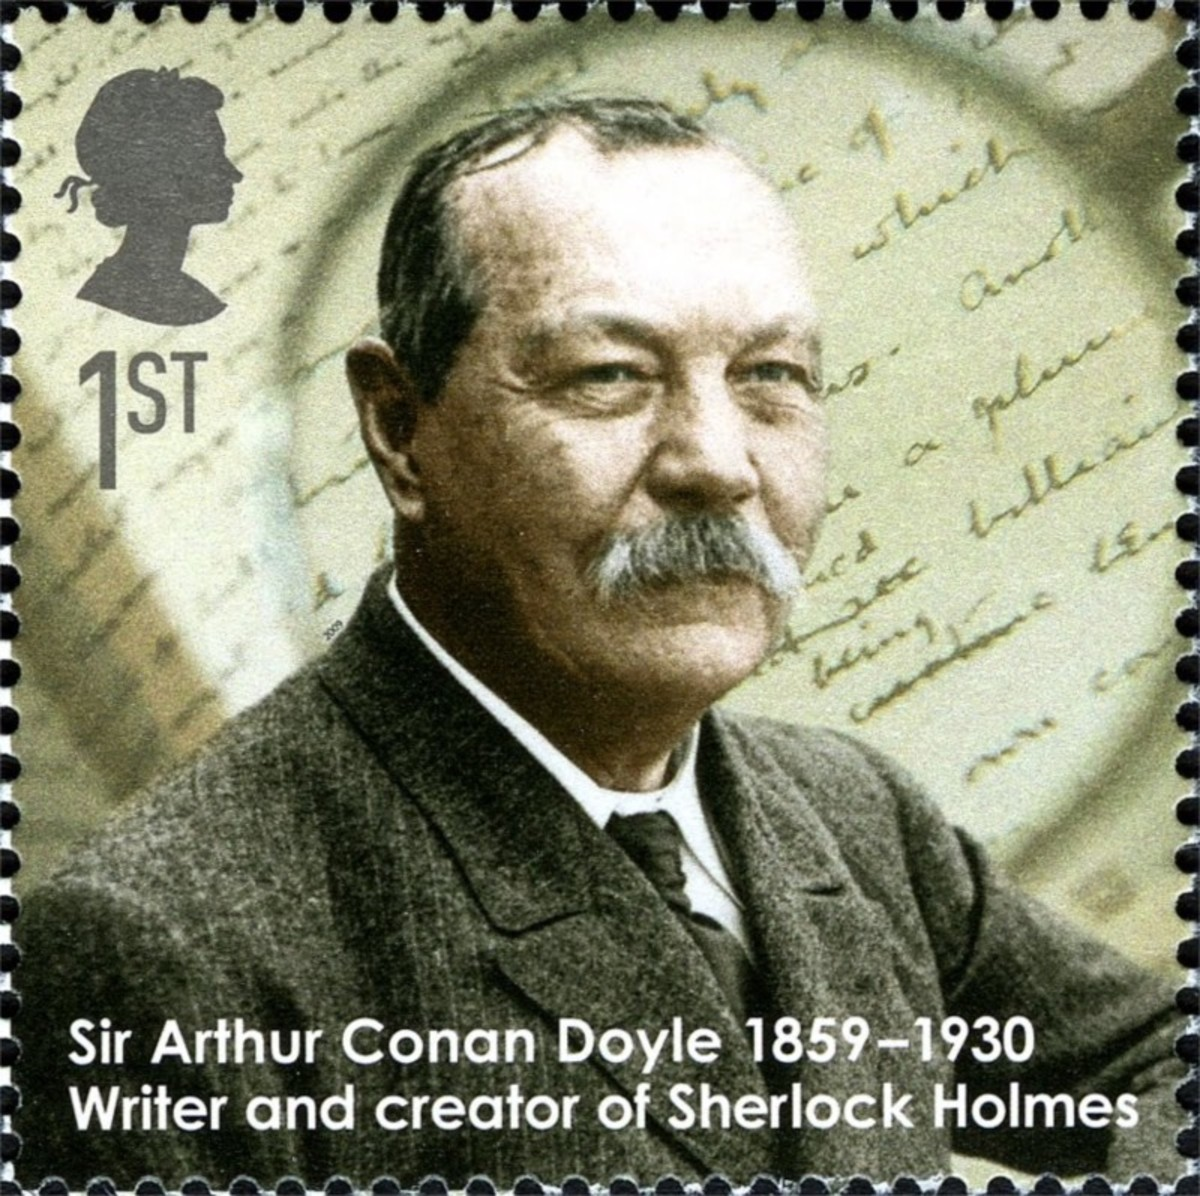 Sir Arthur Conan Doyle, surgeon and author who created Sherlock Holmes through the eyes of his friend Doctor Watson, originally published in Strand Magazine